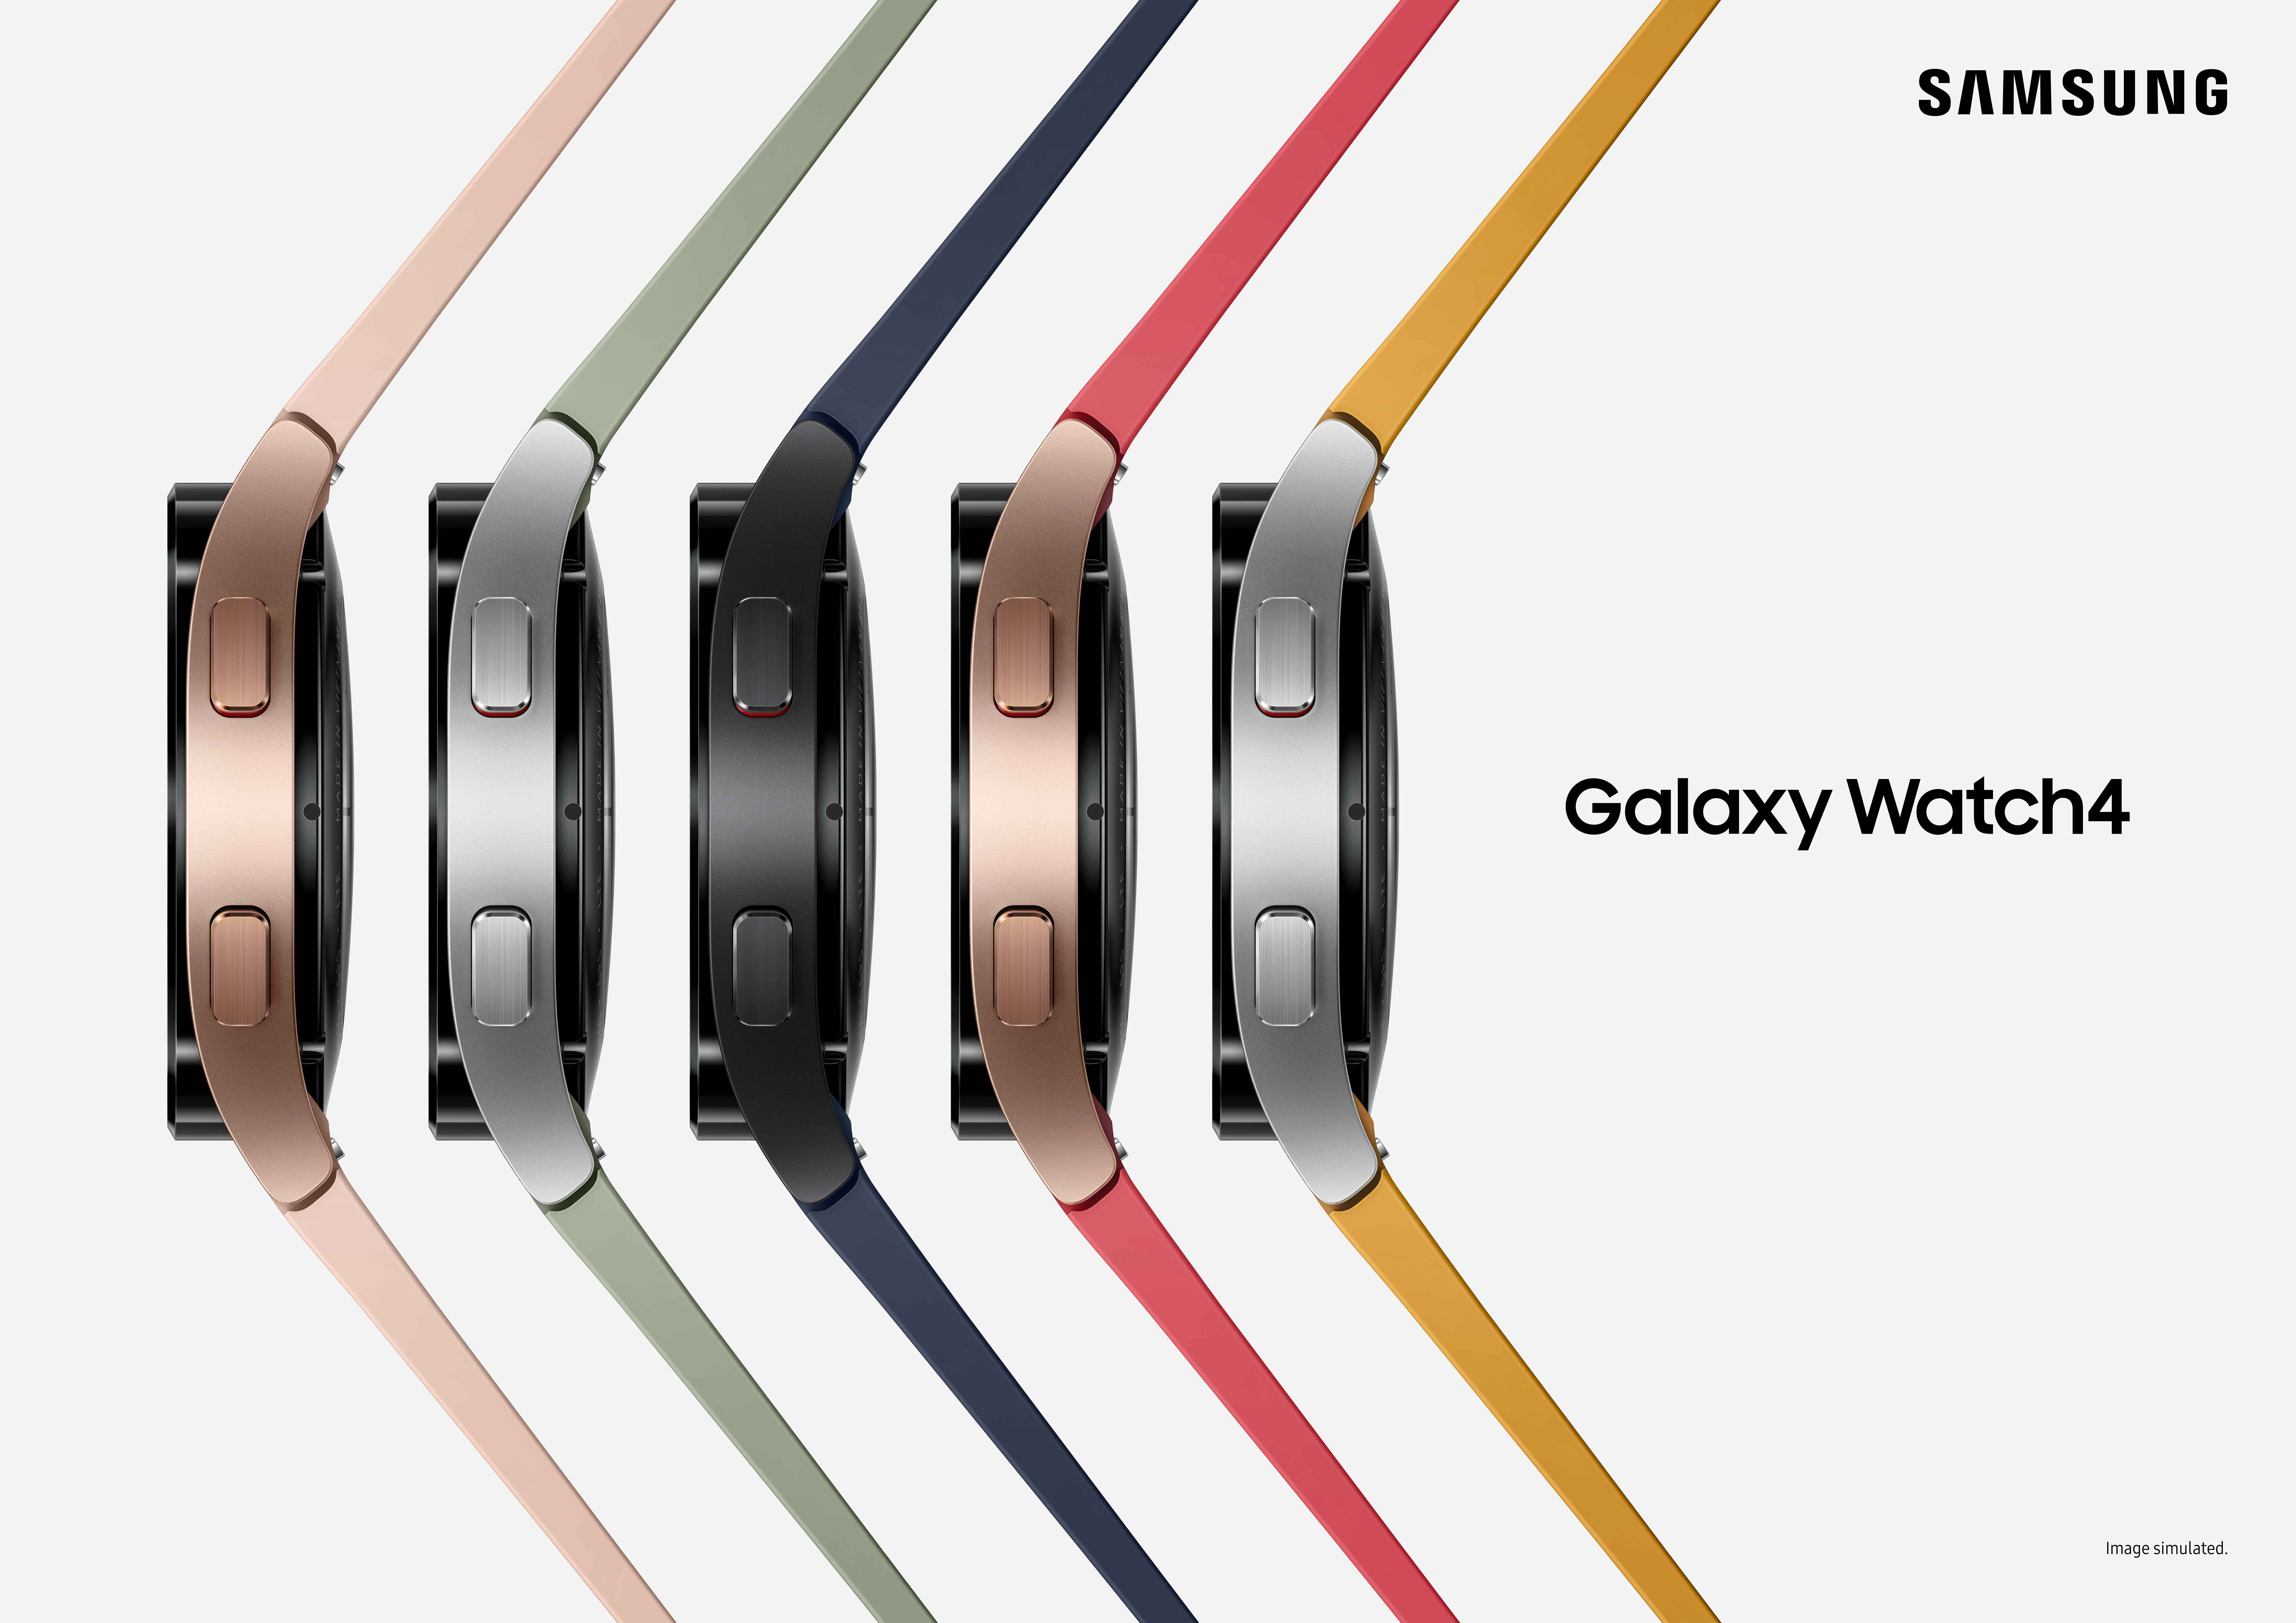 008 galaxywatch4 outbox strap kv 2p